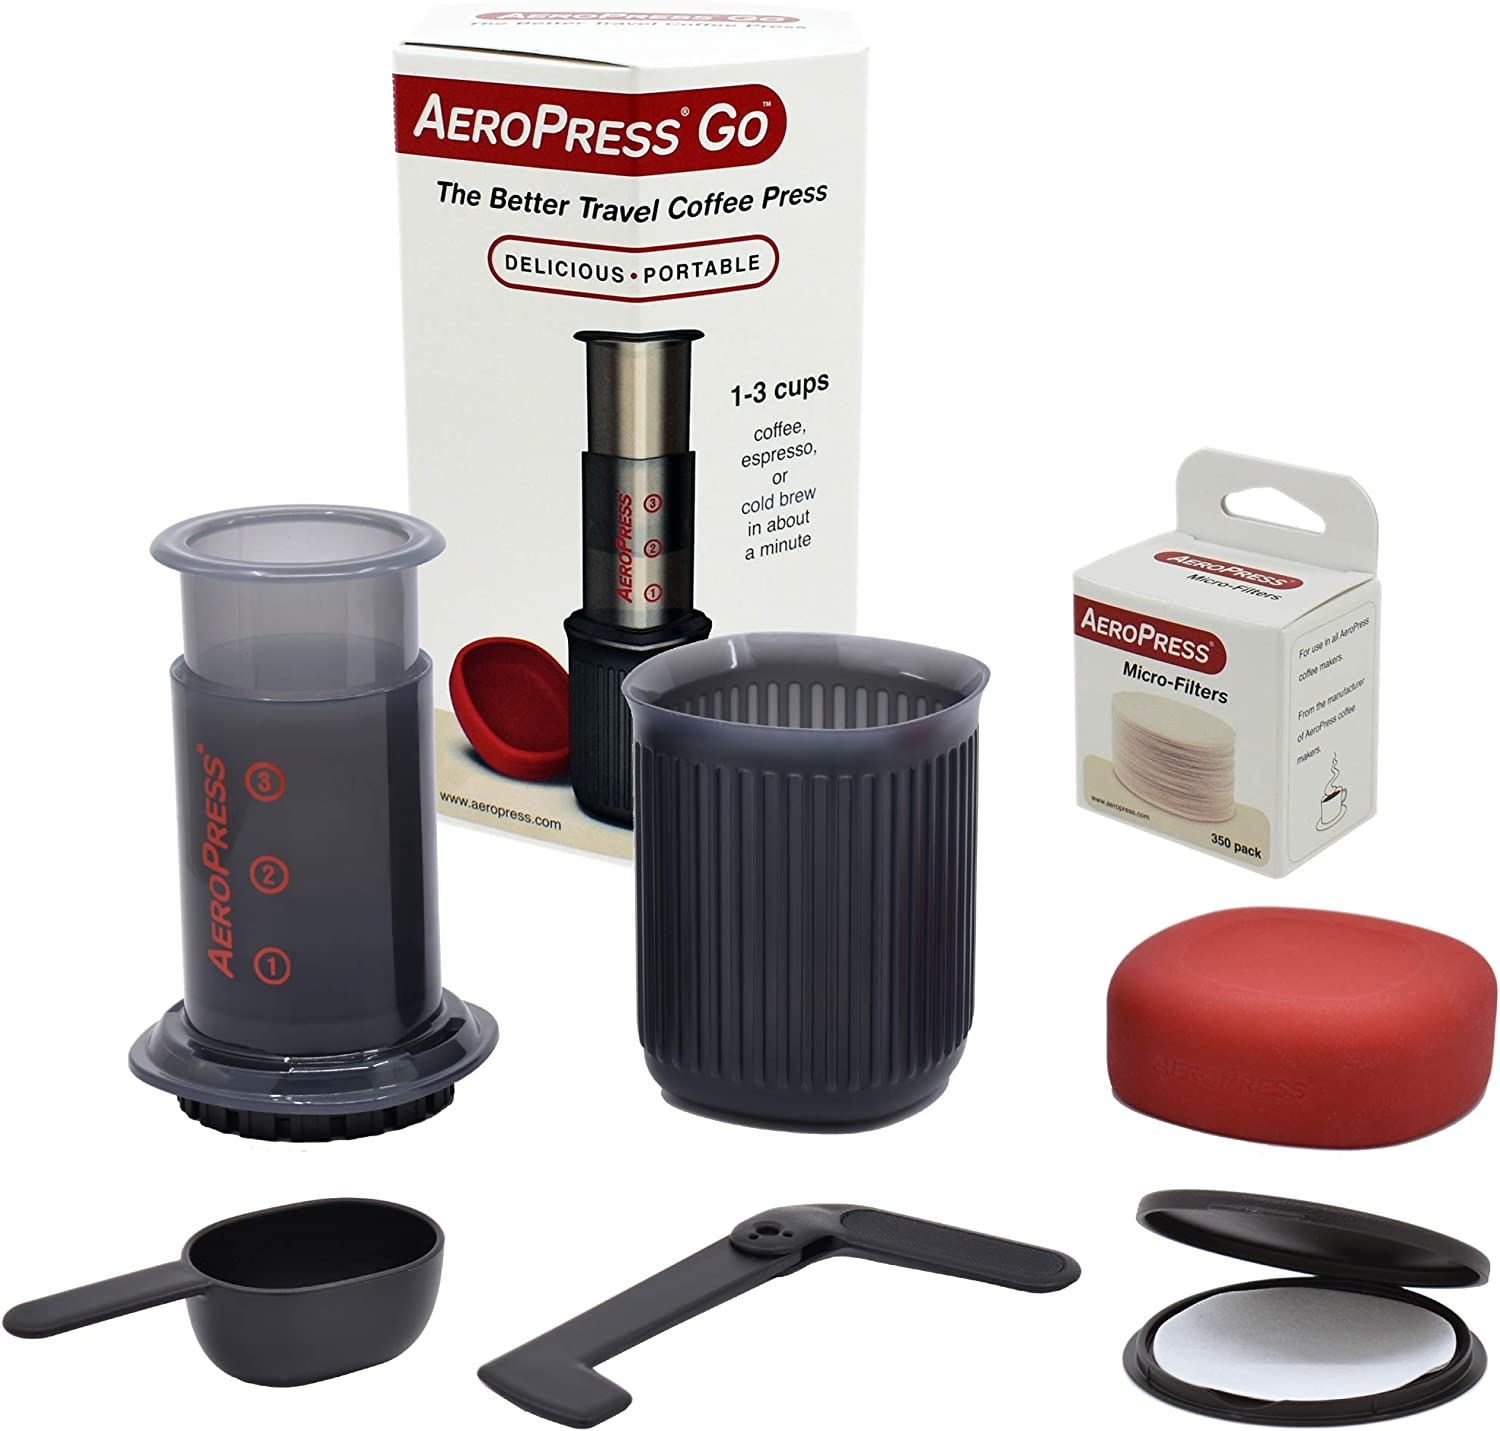 AeroPress 10R11 Go Travel Coffee Maker, Grey